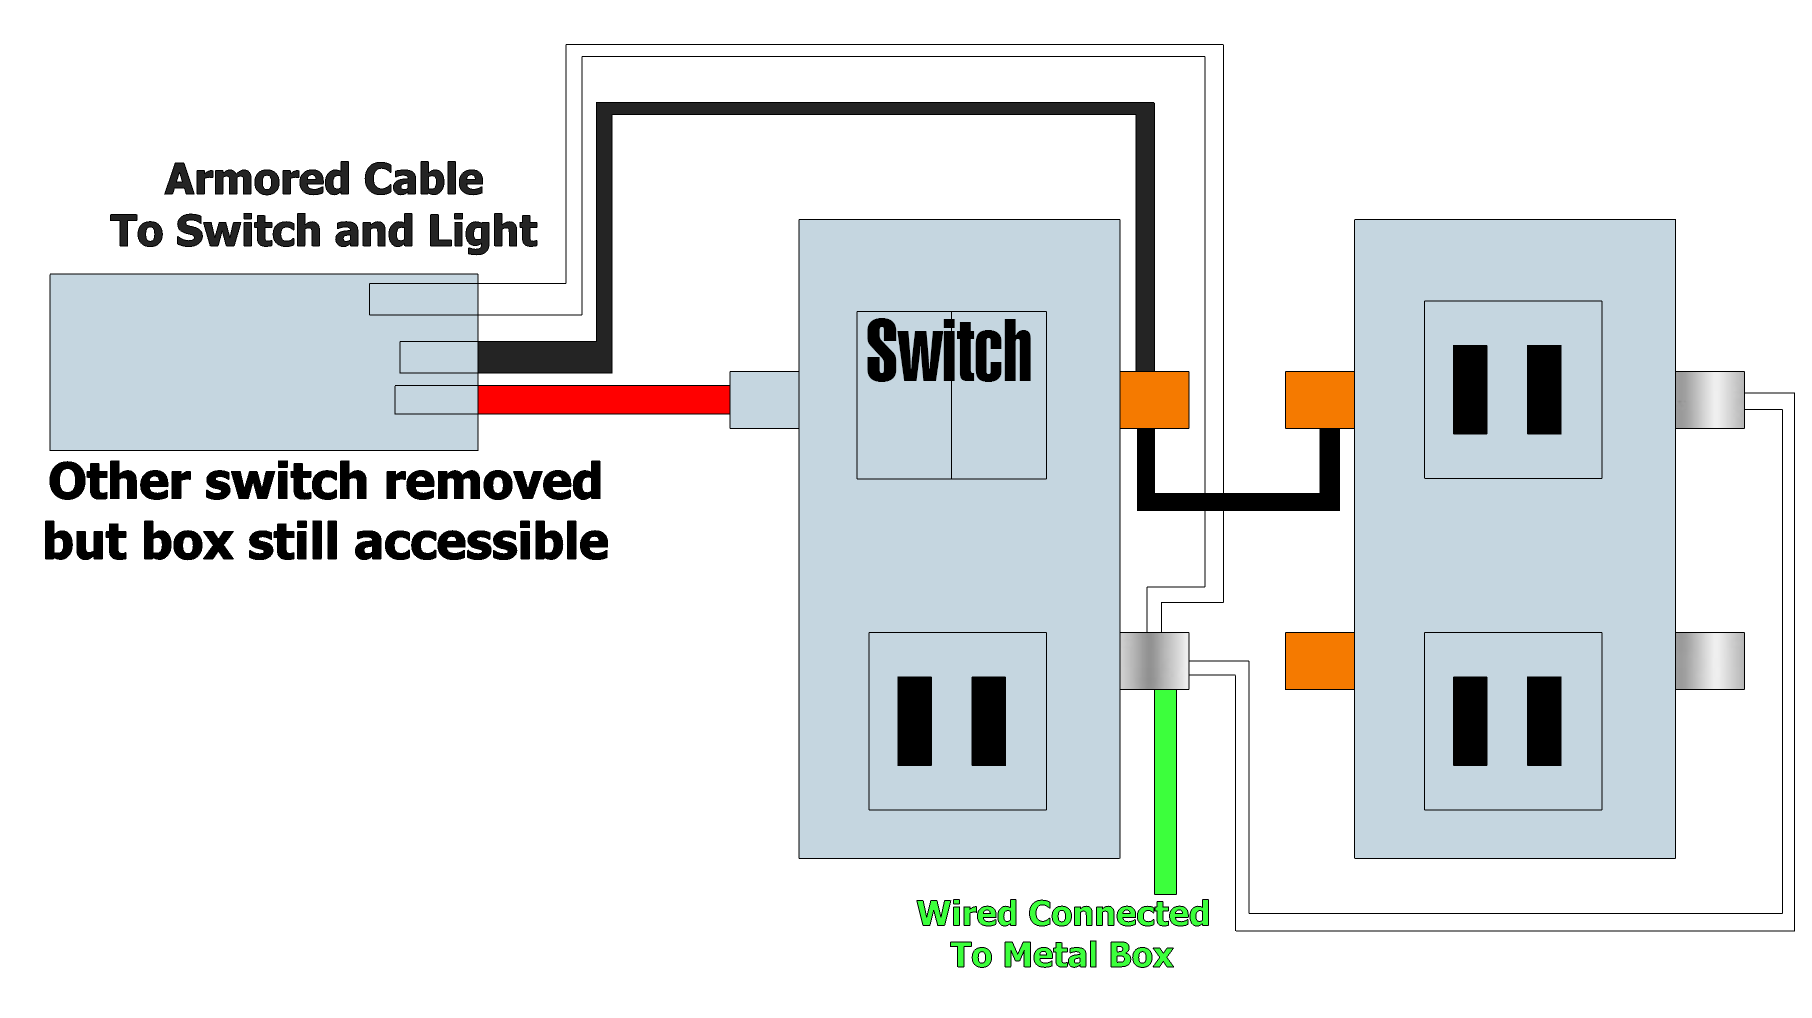 3 Way Transfer Switch Wiring Diagram - telecaster wiring diagram 3 Transfer Switch Wiring Diagram Of A Box on transfer switches for portable generators, transfer switch transformer, transfer switch circuit, whole house transfer switch diagram, circuit diagram, transfer switch manual, transfer switch heater, transfer switches for home use, home transfer switch diagram, transfer switch installation, transfer switch schematic, ignition switch diagram, transfer switch cable, transfer switch connections, automatic transfer switch diagram, transfer switch service, transfer switch generator, auto on off switch diagram, transfer switch cover, transfer switch system,